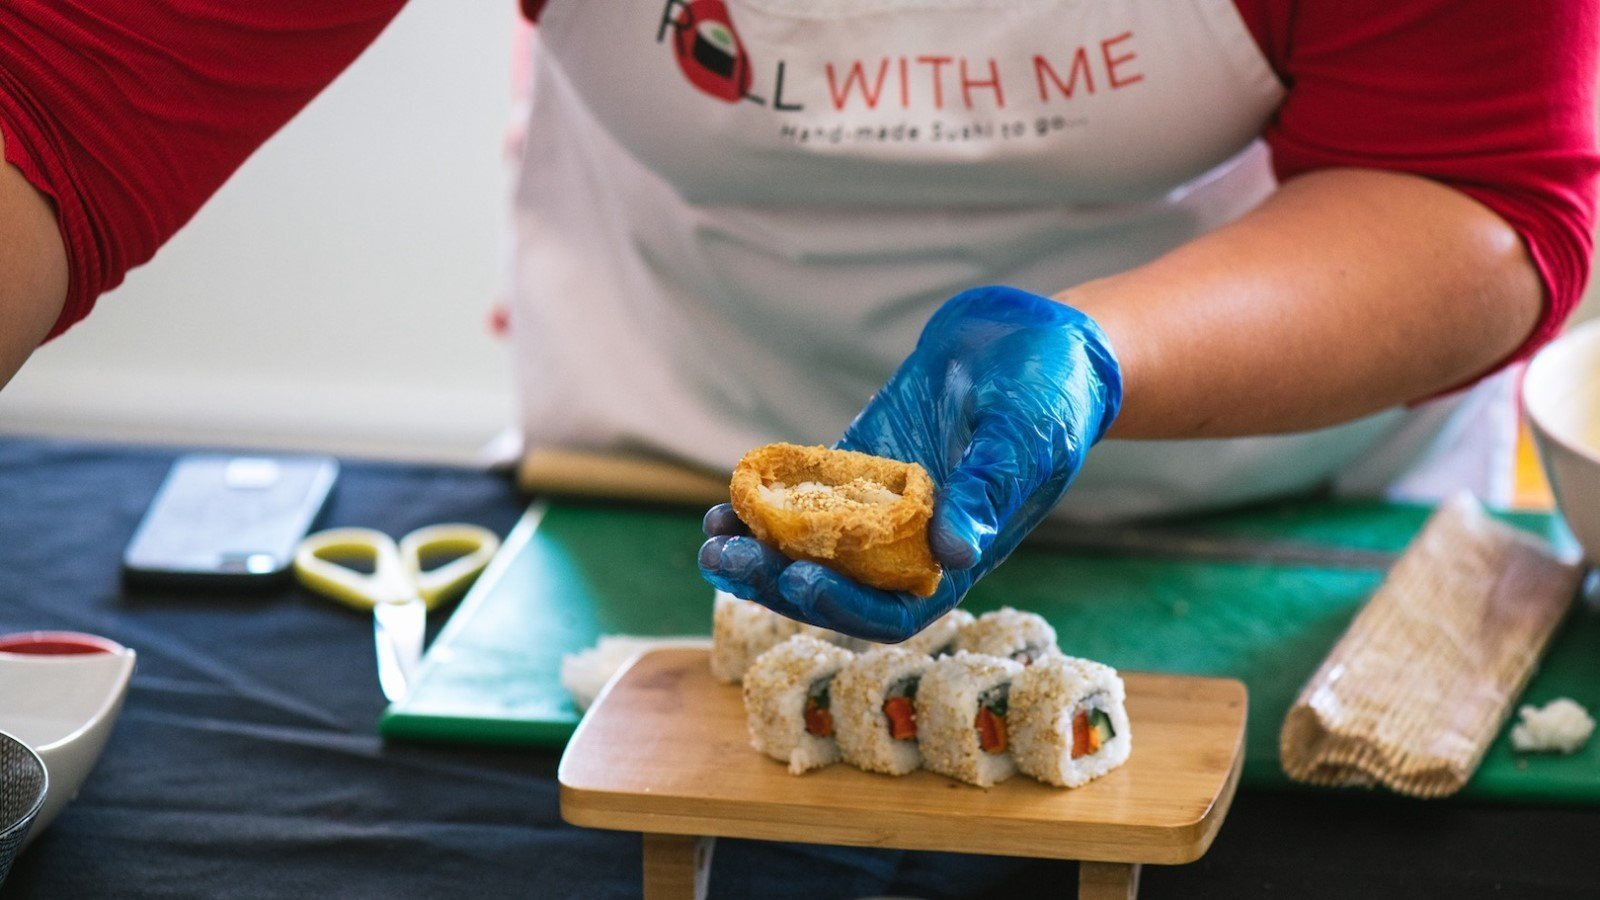 Roll With Me Sushi-Making Workshops For Kids